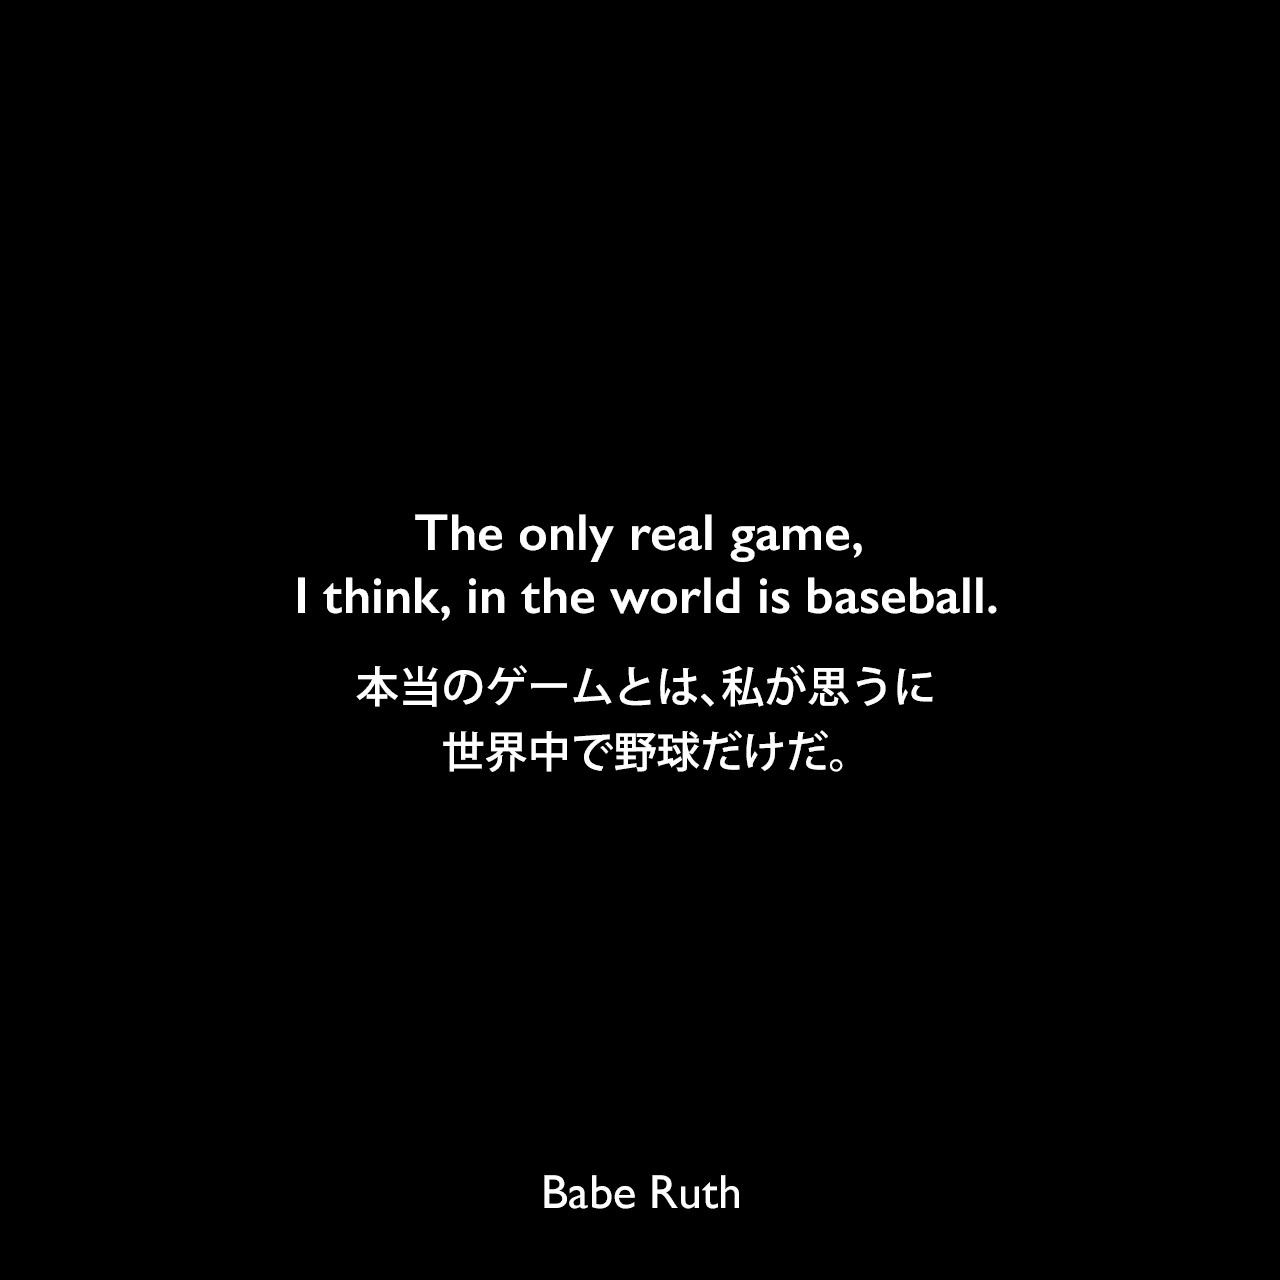 The only real game, I think, in the world is baseball.本当のゲームとは、私が思うに、世界中で野球だけだ。Babe Ruth